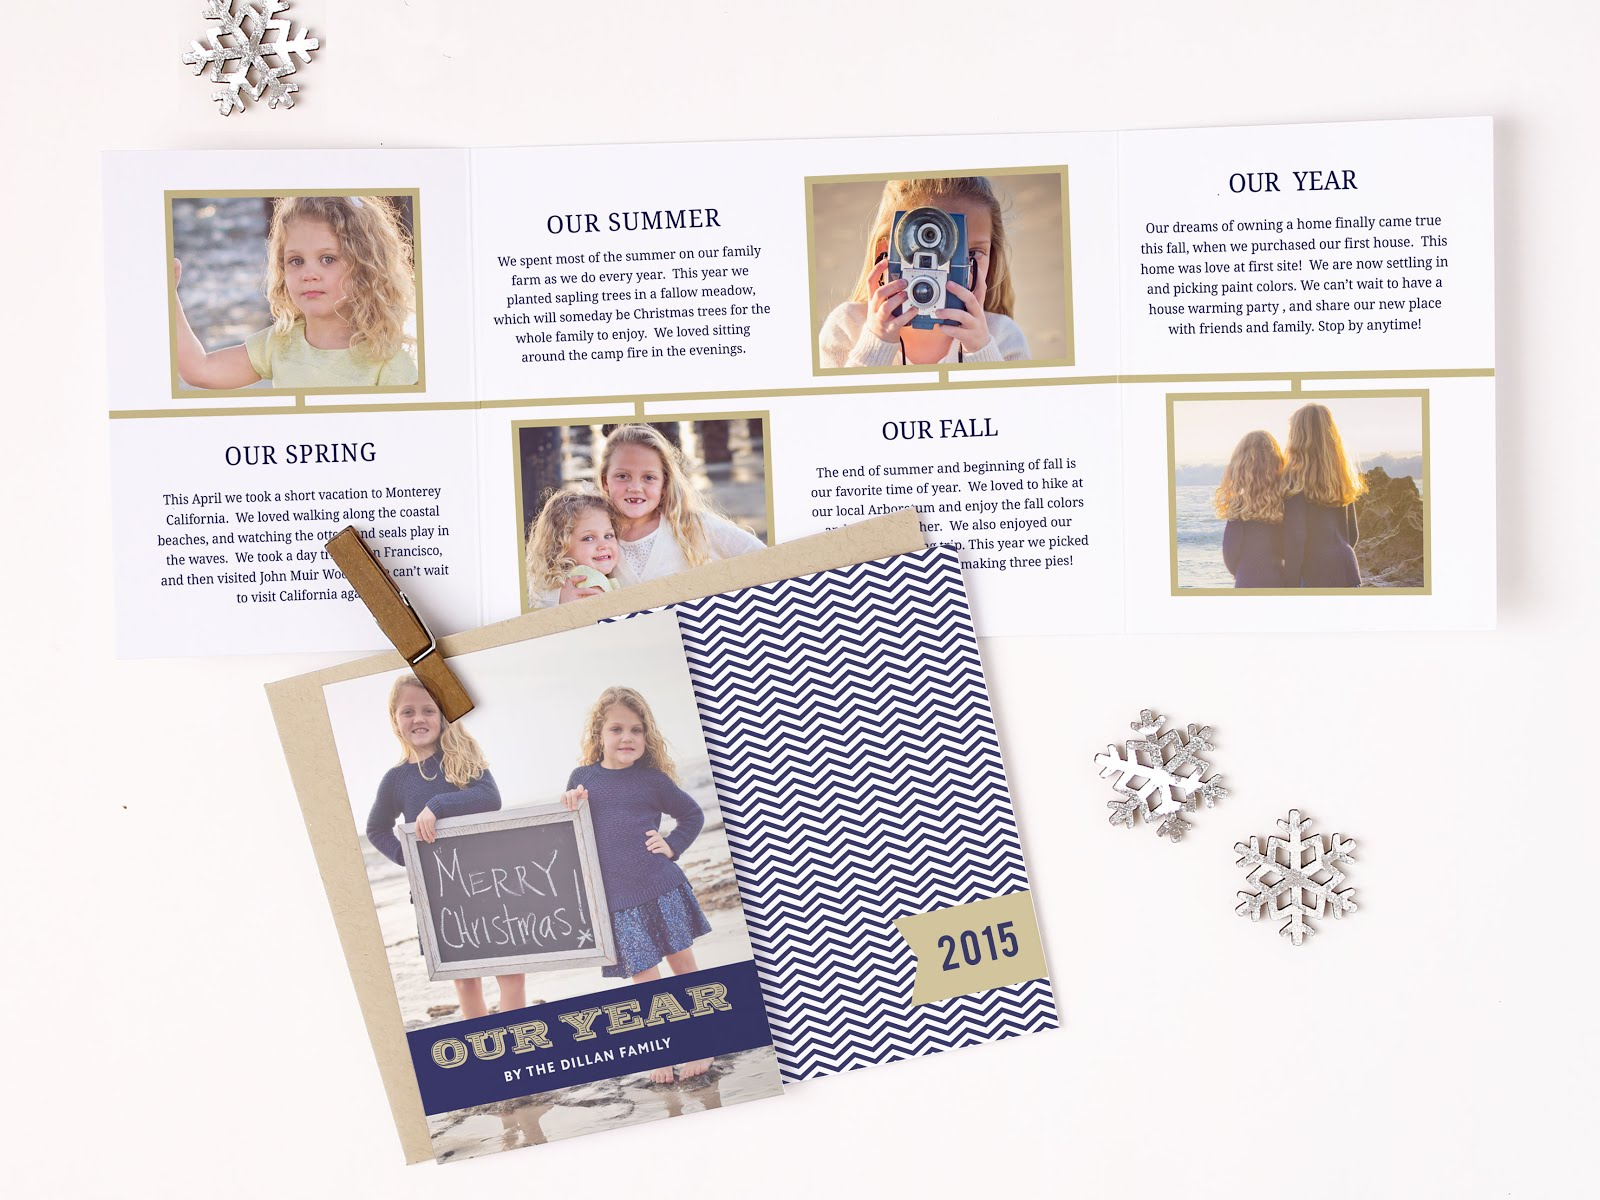 Christmas Cards - BasicInvite.com - The Naptime Reviewer - Things to do with Cards After the Holidays